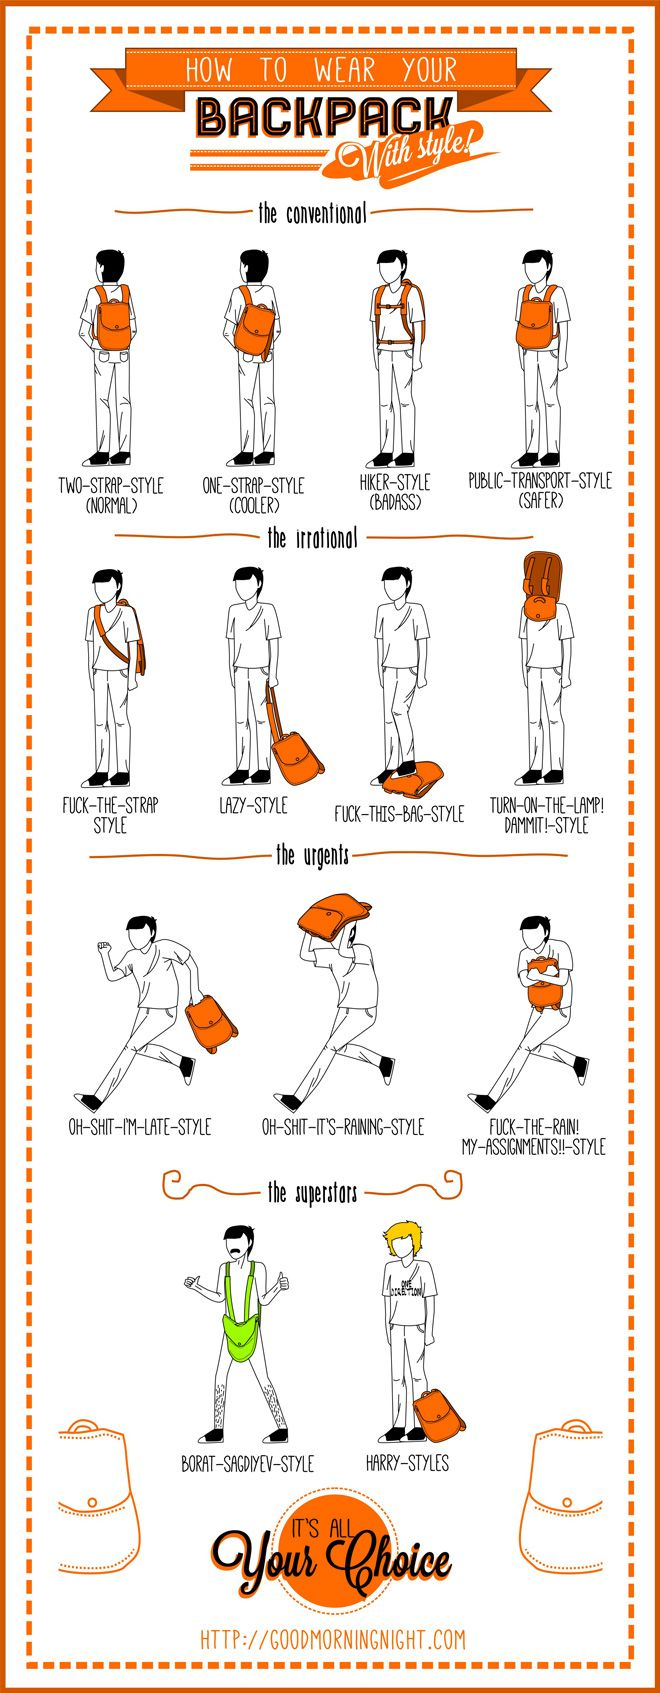 Infographic: How To Wear Your Backpack With Style